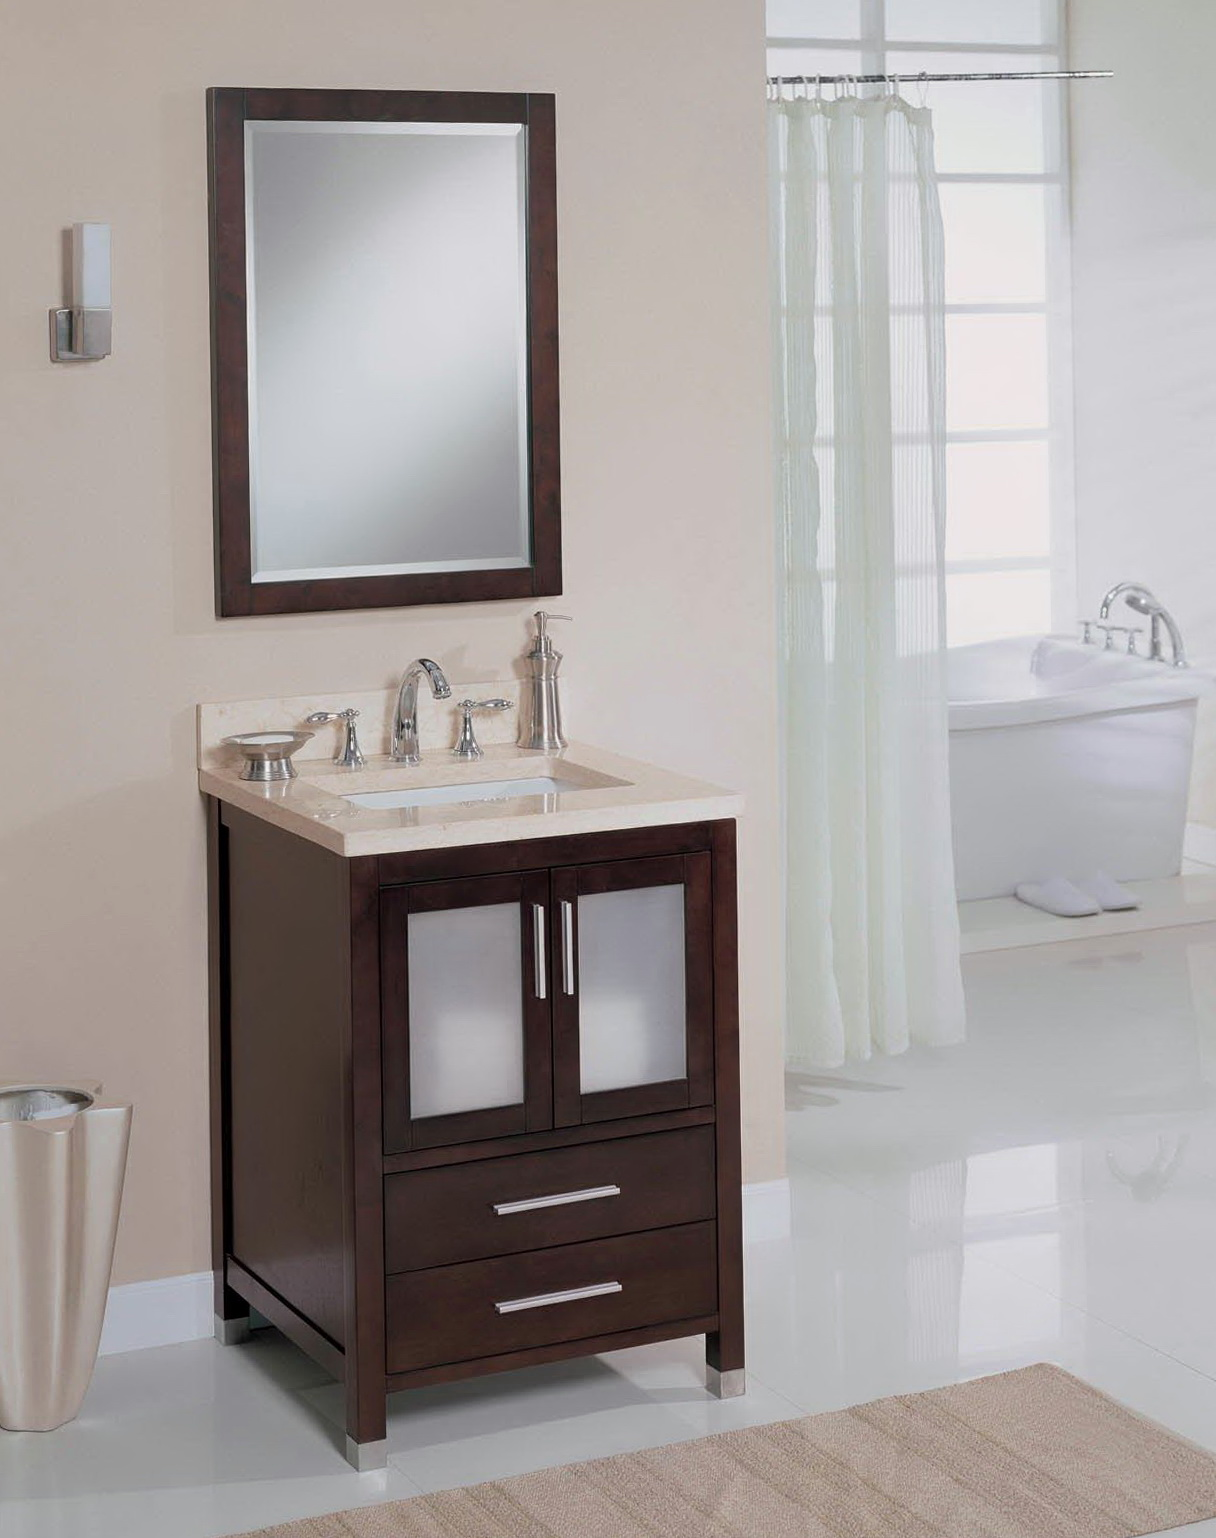 18 Deep Bathroom Vanity